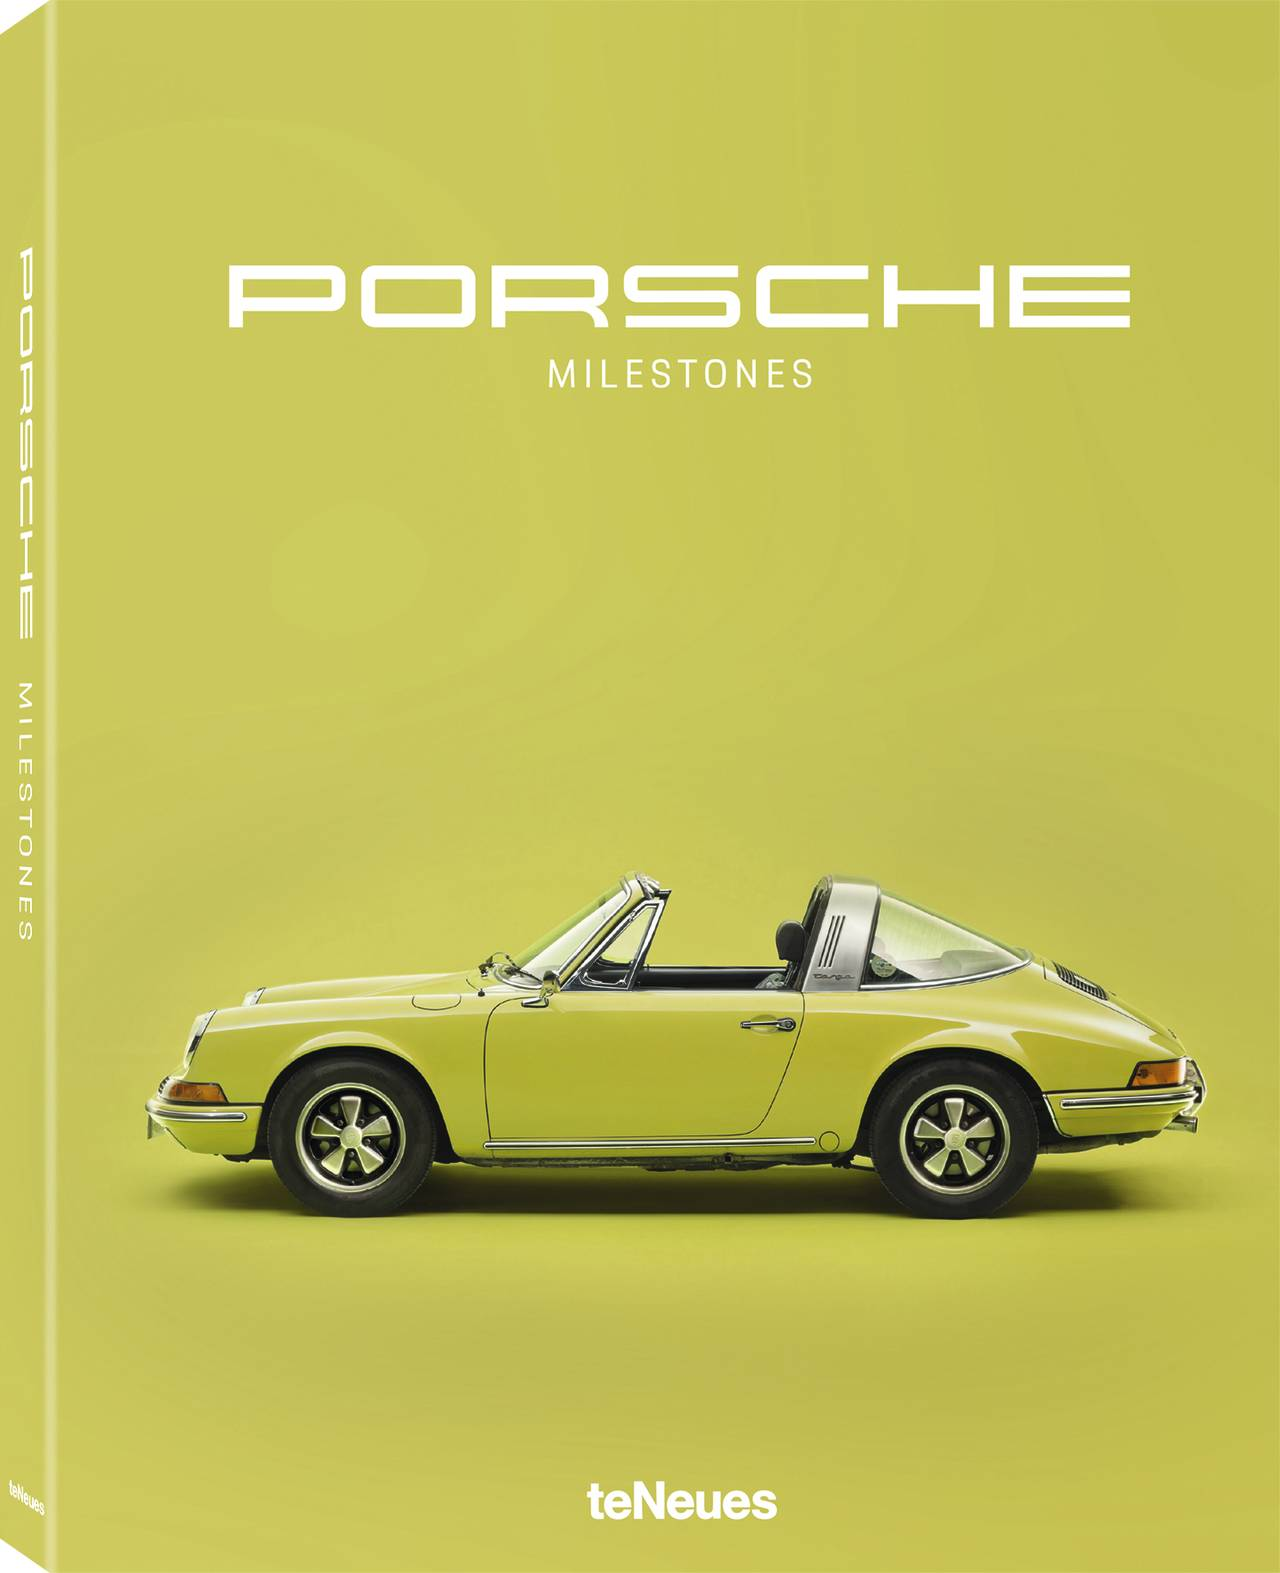 © Porsche Milestones, published by teNeues, € 49,90 www.teneues.com. Porsche 911 T Targa, 1970, Photo © Rafael Krötz